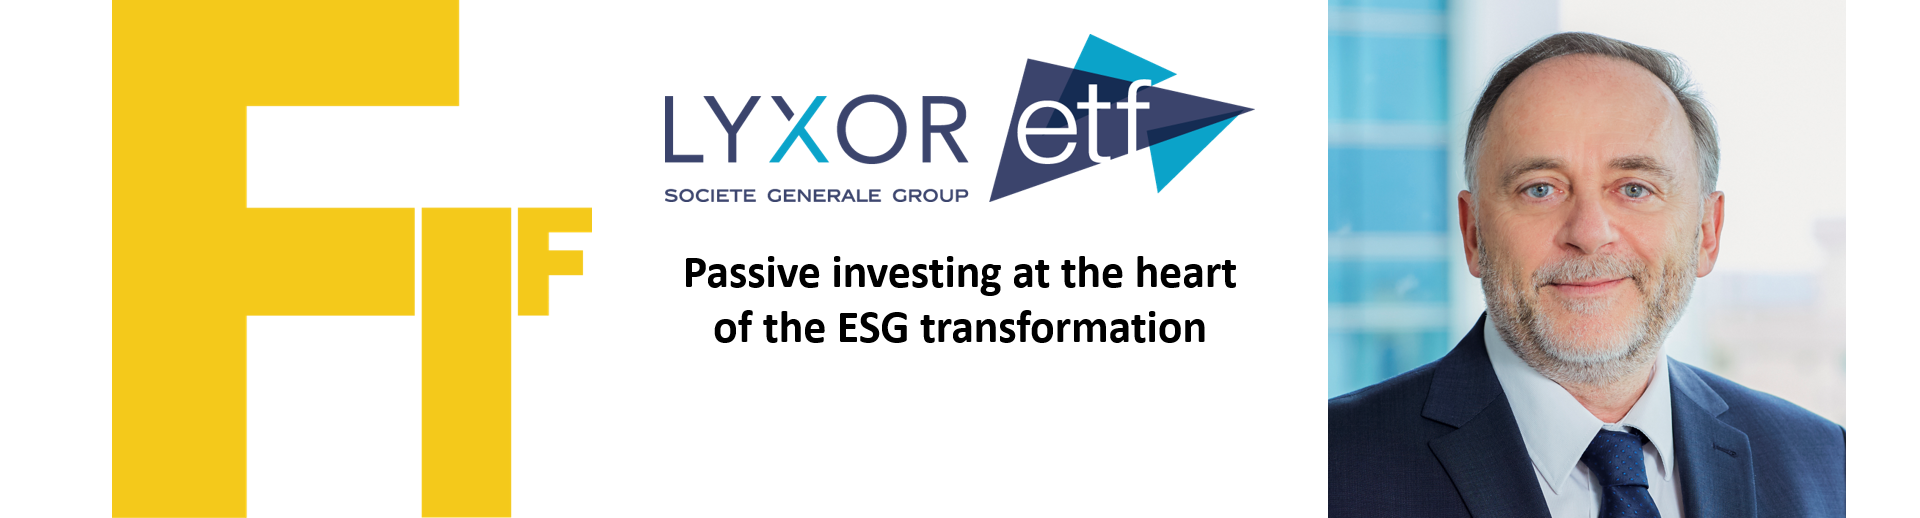 Passive investing at the heart of the ESG transformation (Lyxor ETF)